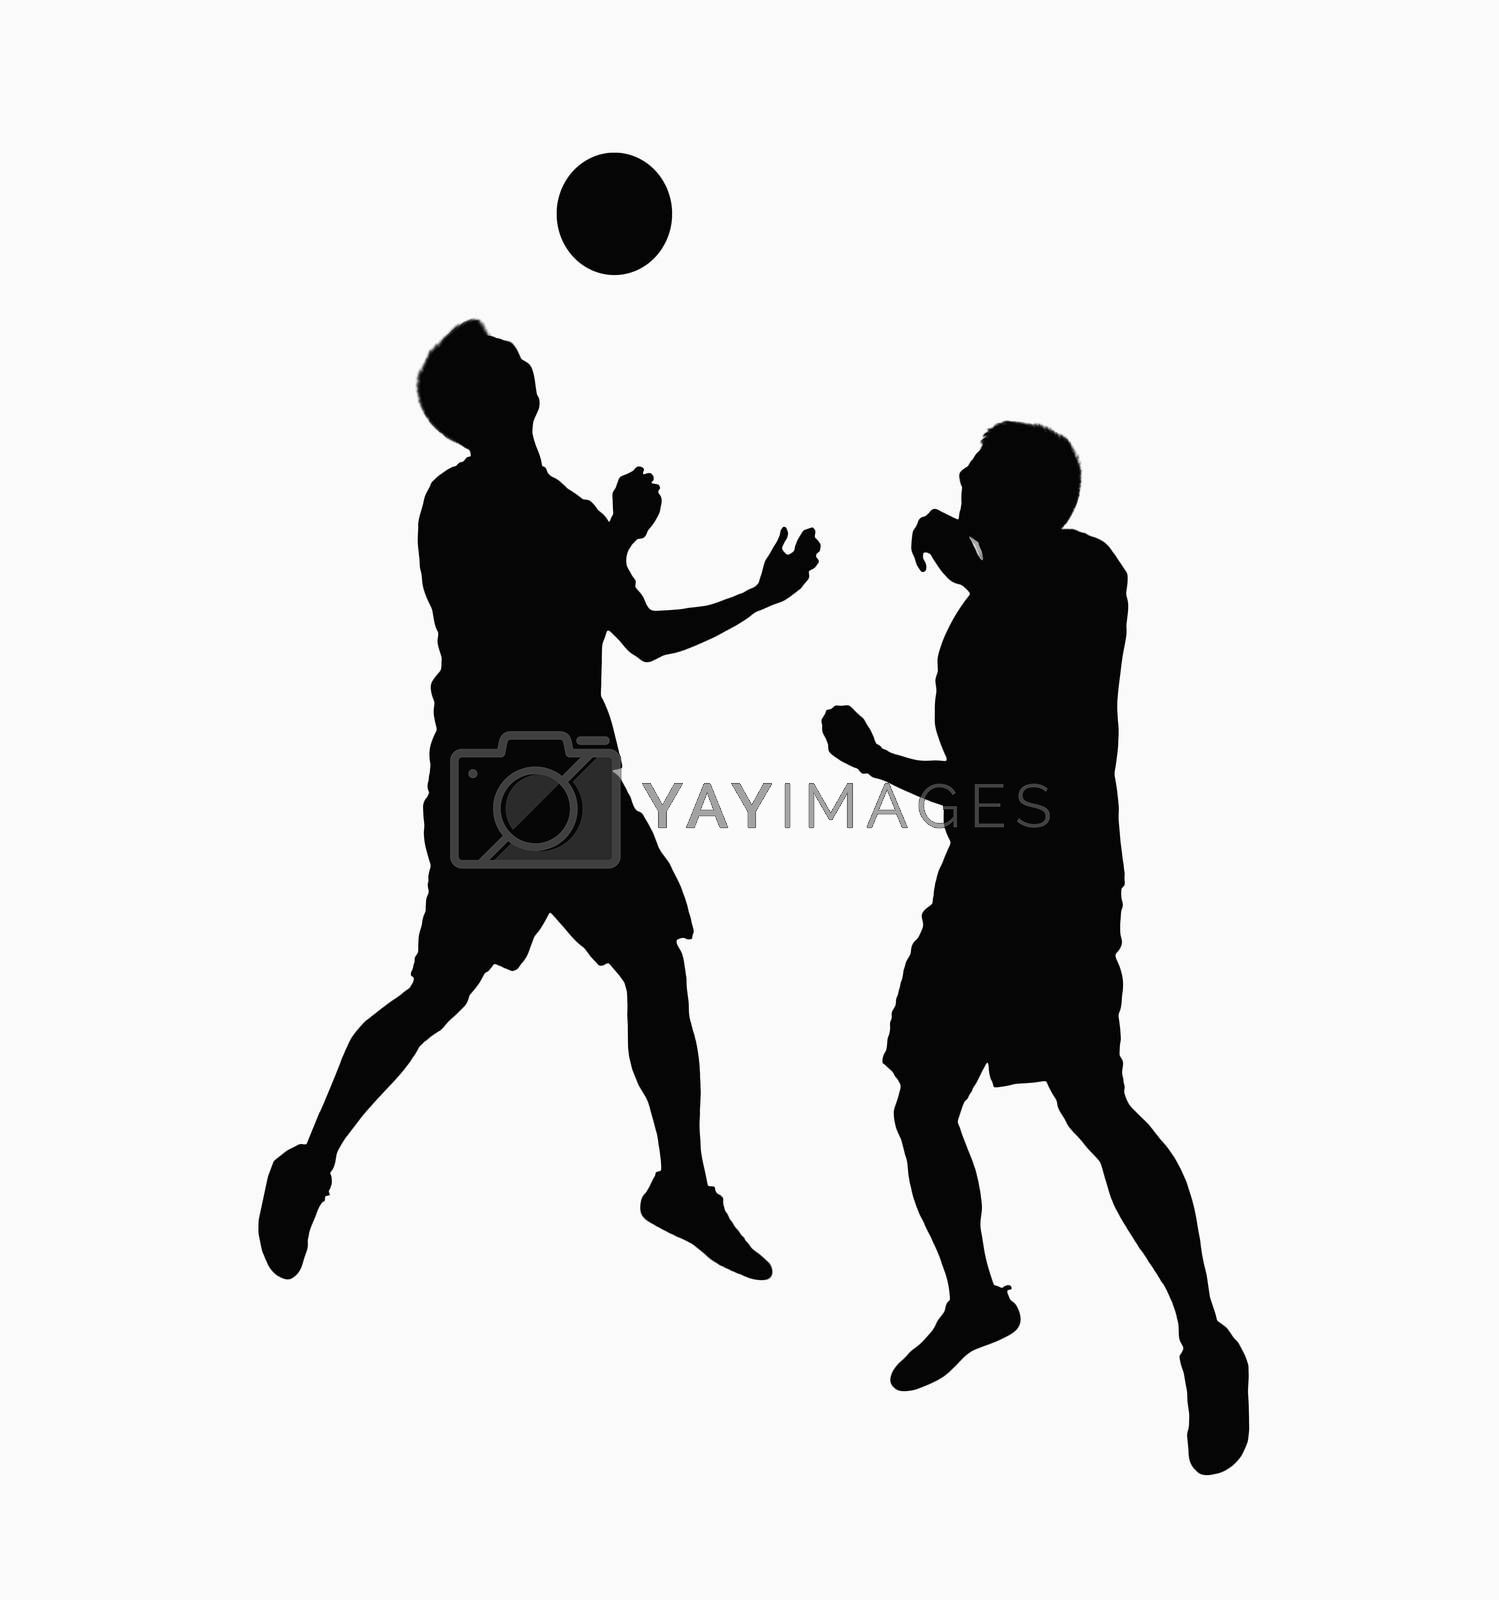 Silhouette of two soccer players fighting for ball.